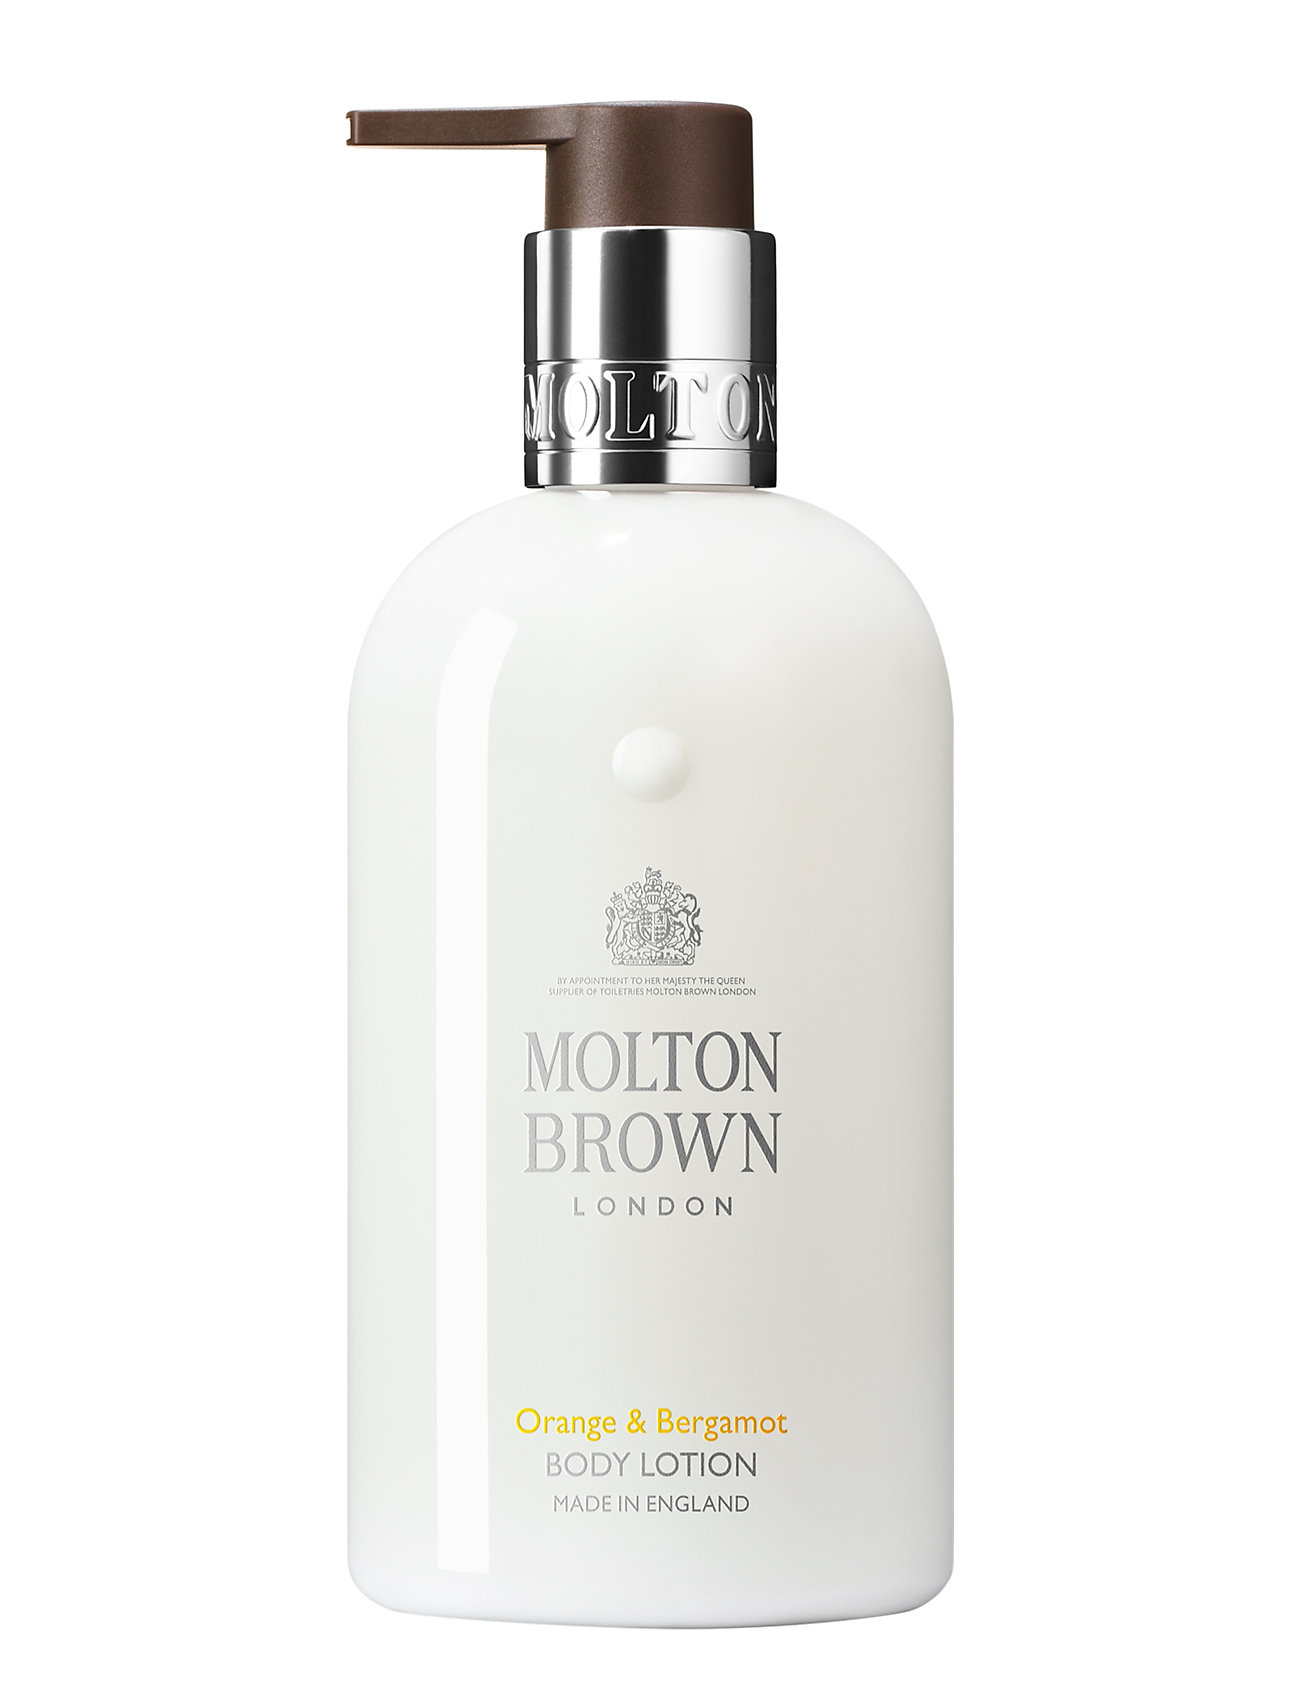 Image of Orange & Bergamot Body Lotion Body Lotion Hudcreme Nude Molton Brown (3277932197)